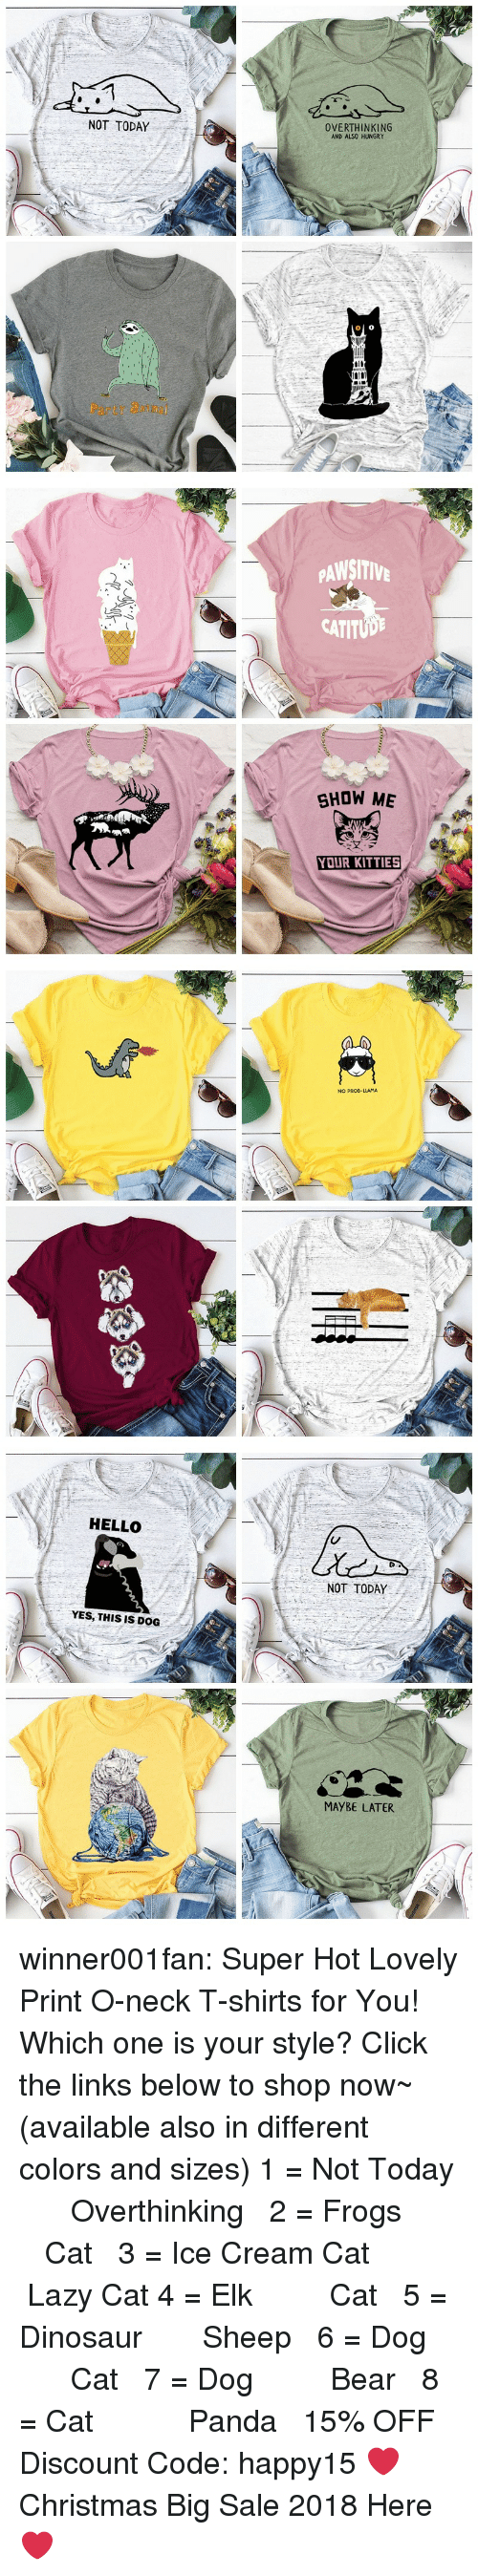 Christmas, Click, and Dinosaur: NOT TODAY  OVERTHINKING  AND ALSO HUNGRY  Party atm   PAWSITIV  CATITUD  SHOW ME  YOUR KITTIES   NO PROD-LLAMA   HELLO  NOT TODAY  YES, THIS IS DOG  MAYBE LATER winner001fan: Super Hot Lovely Print O-neck T-shirts for You! Which one is your style? Click the links below to shop now~ (available also in different colors and sizes) 1 = Not Today    ☆★   Overthinking  2 = Frogs     ☆★   Cat  3 = Ice Cream Cat    ☆★    Lazy Cat  4 = Elk     ☆★    Cat  5 = Dinosaur    ☆★   Sheep  6 = Dog     ☆★    Cat  7 = Dog     ☆★    Bear  8 = Cat       ☆★    Panda  15% OFF Discount Code: happy15 ❤Christmas Big Sale 2018 Here ❤